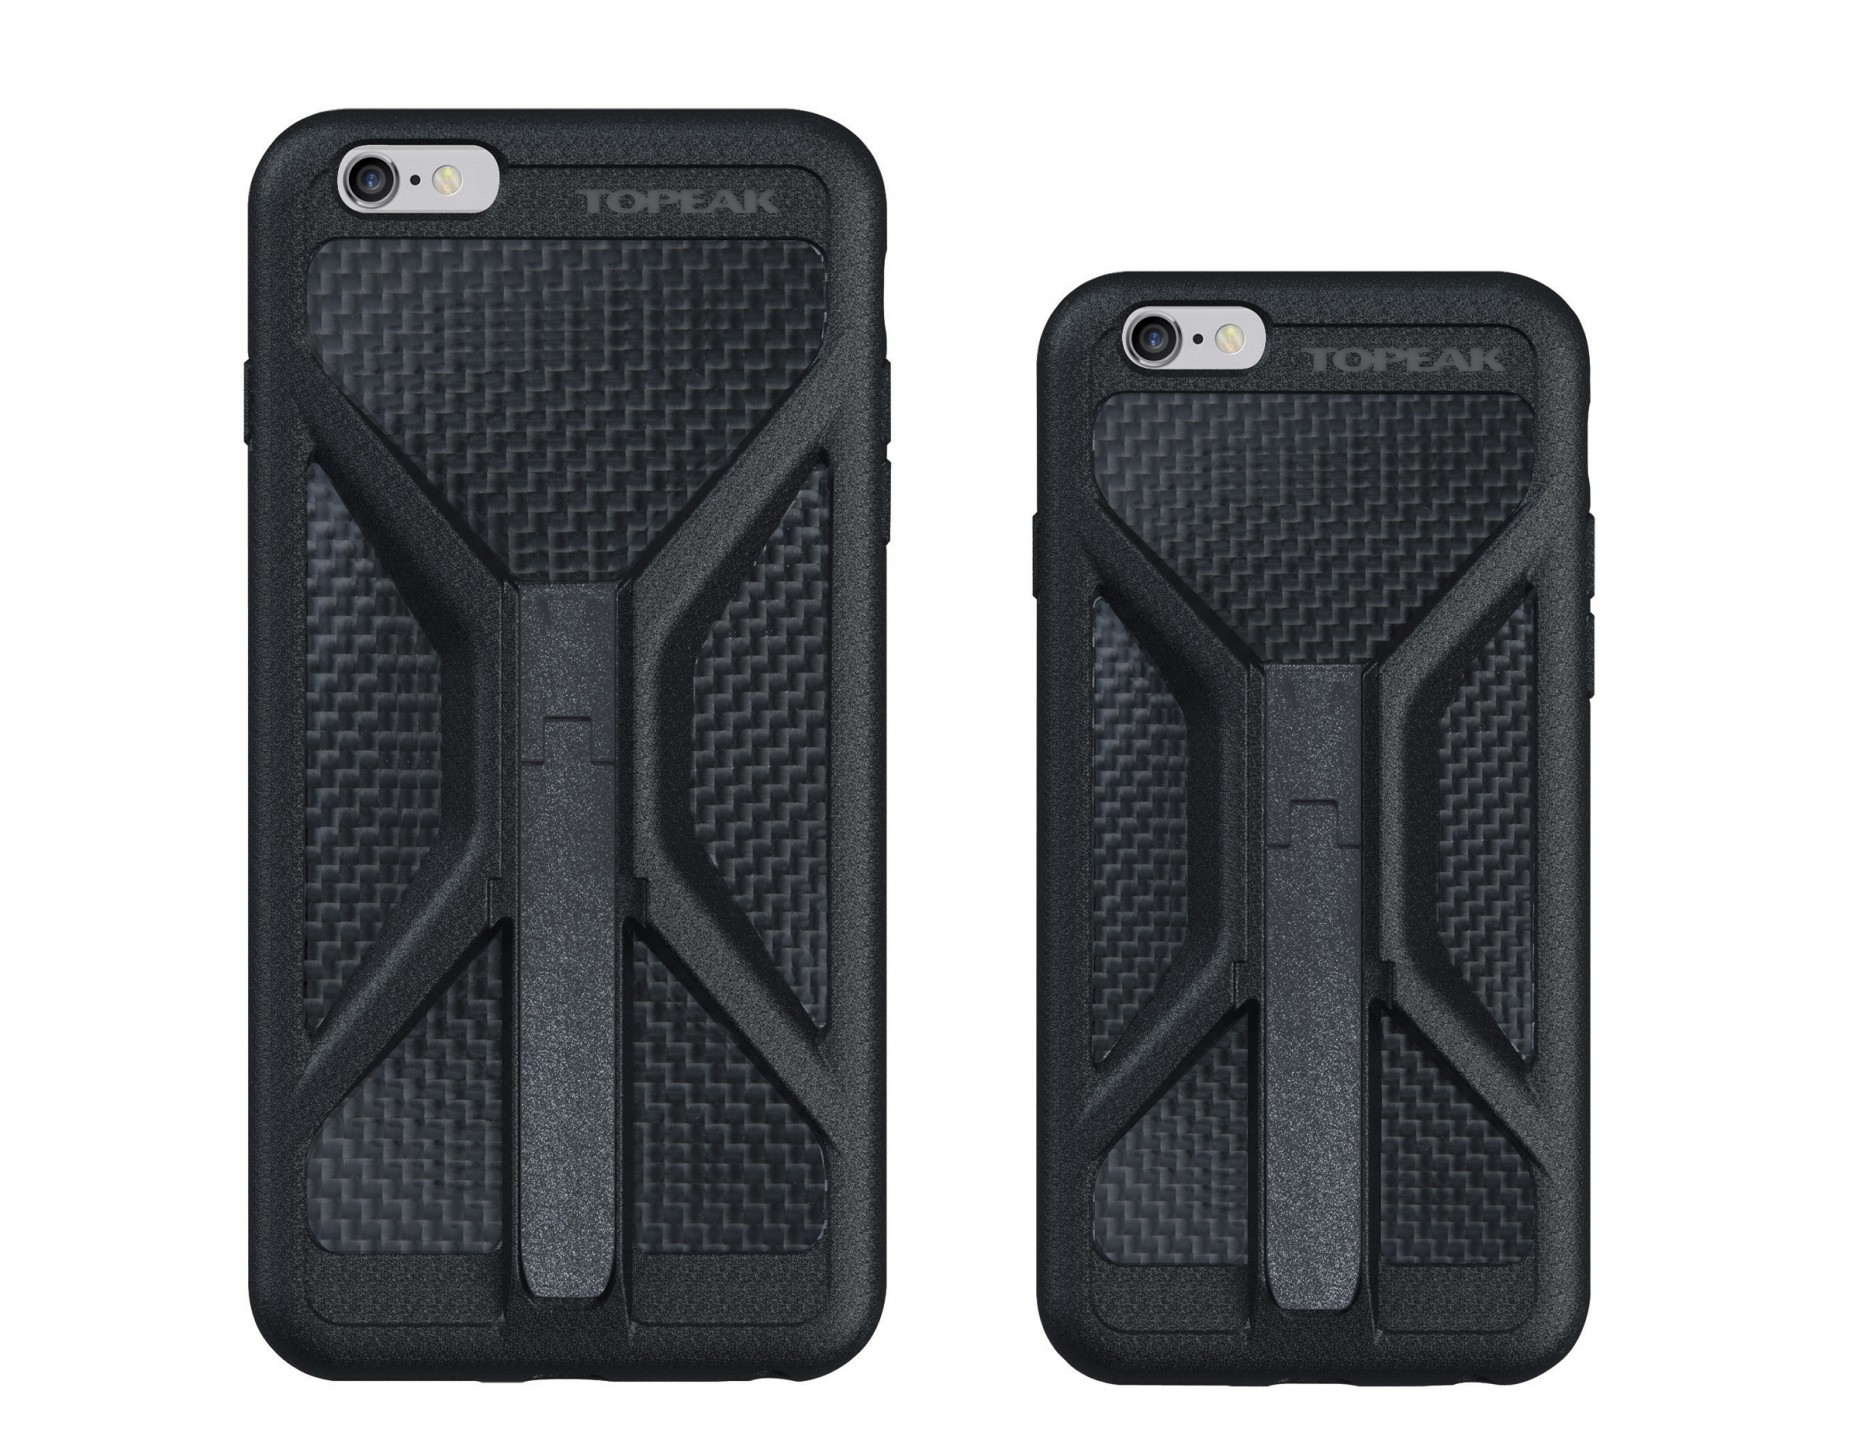 low priced df772 7440b Topeak Ridecase w/ Mount for iPhone 6/6s